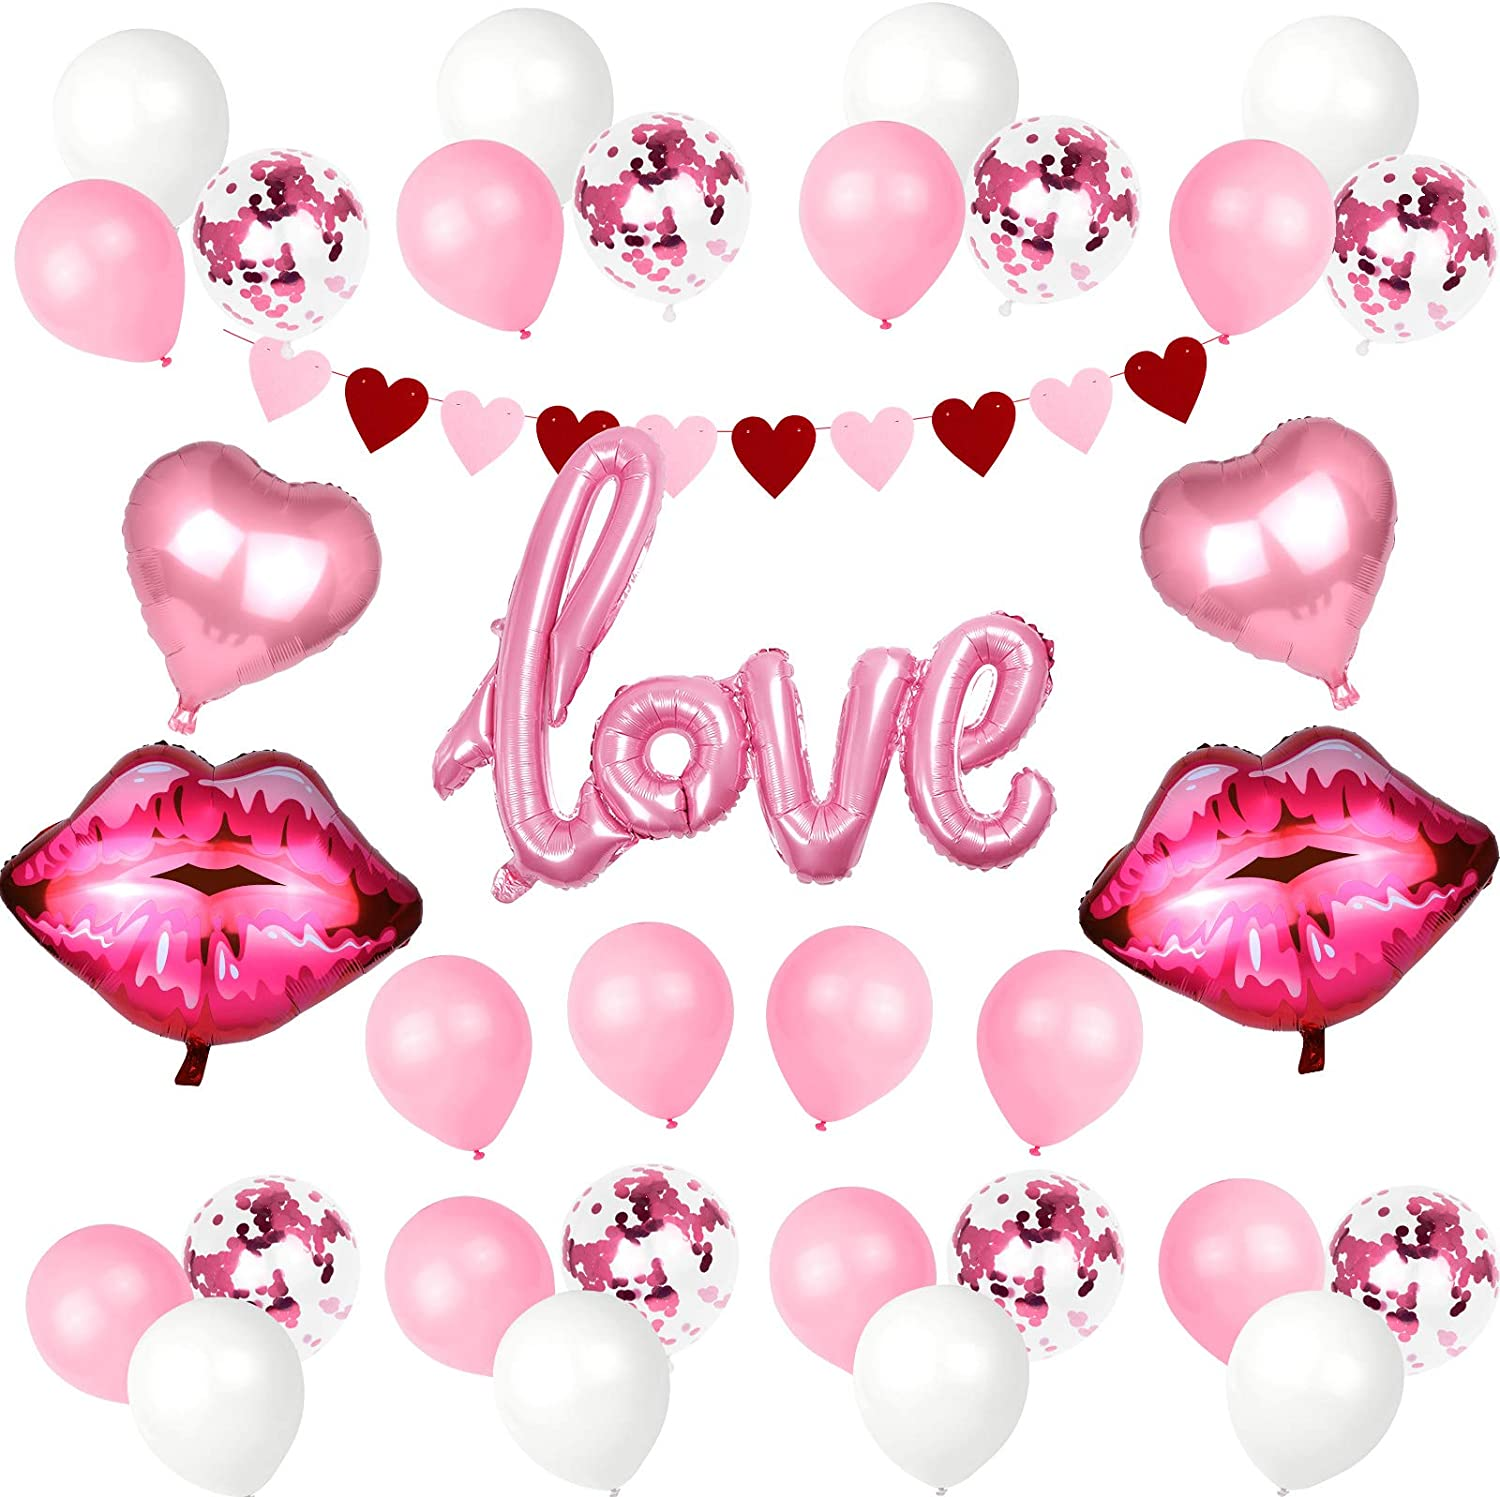 Heart Confetti Balloons Engaged Valentines Proposal Hen Party Decorations Love